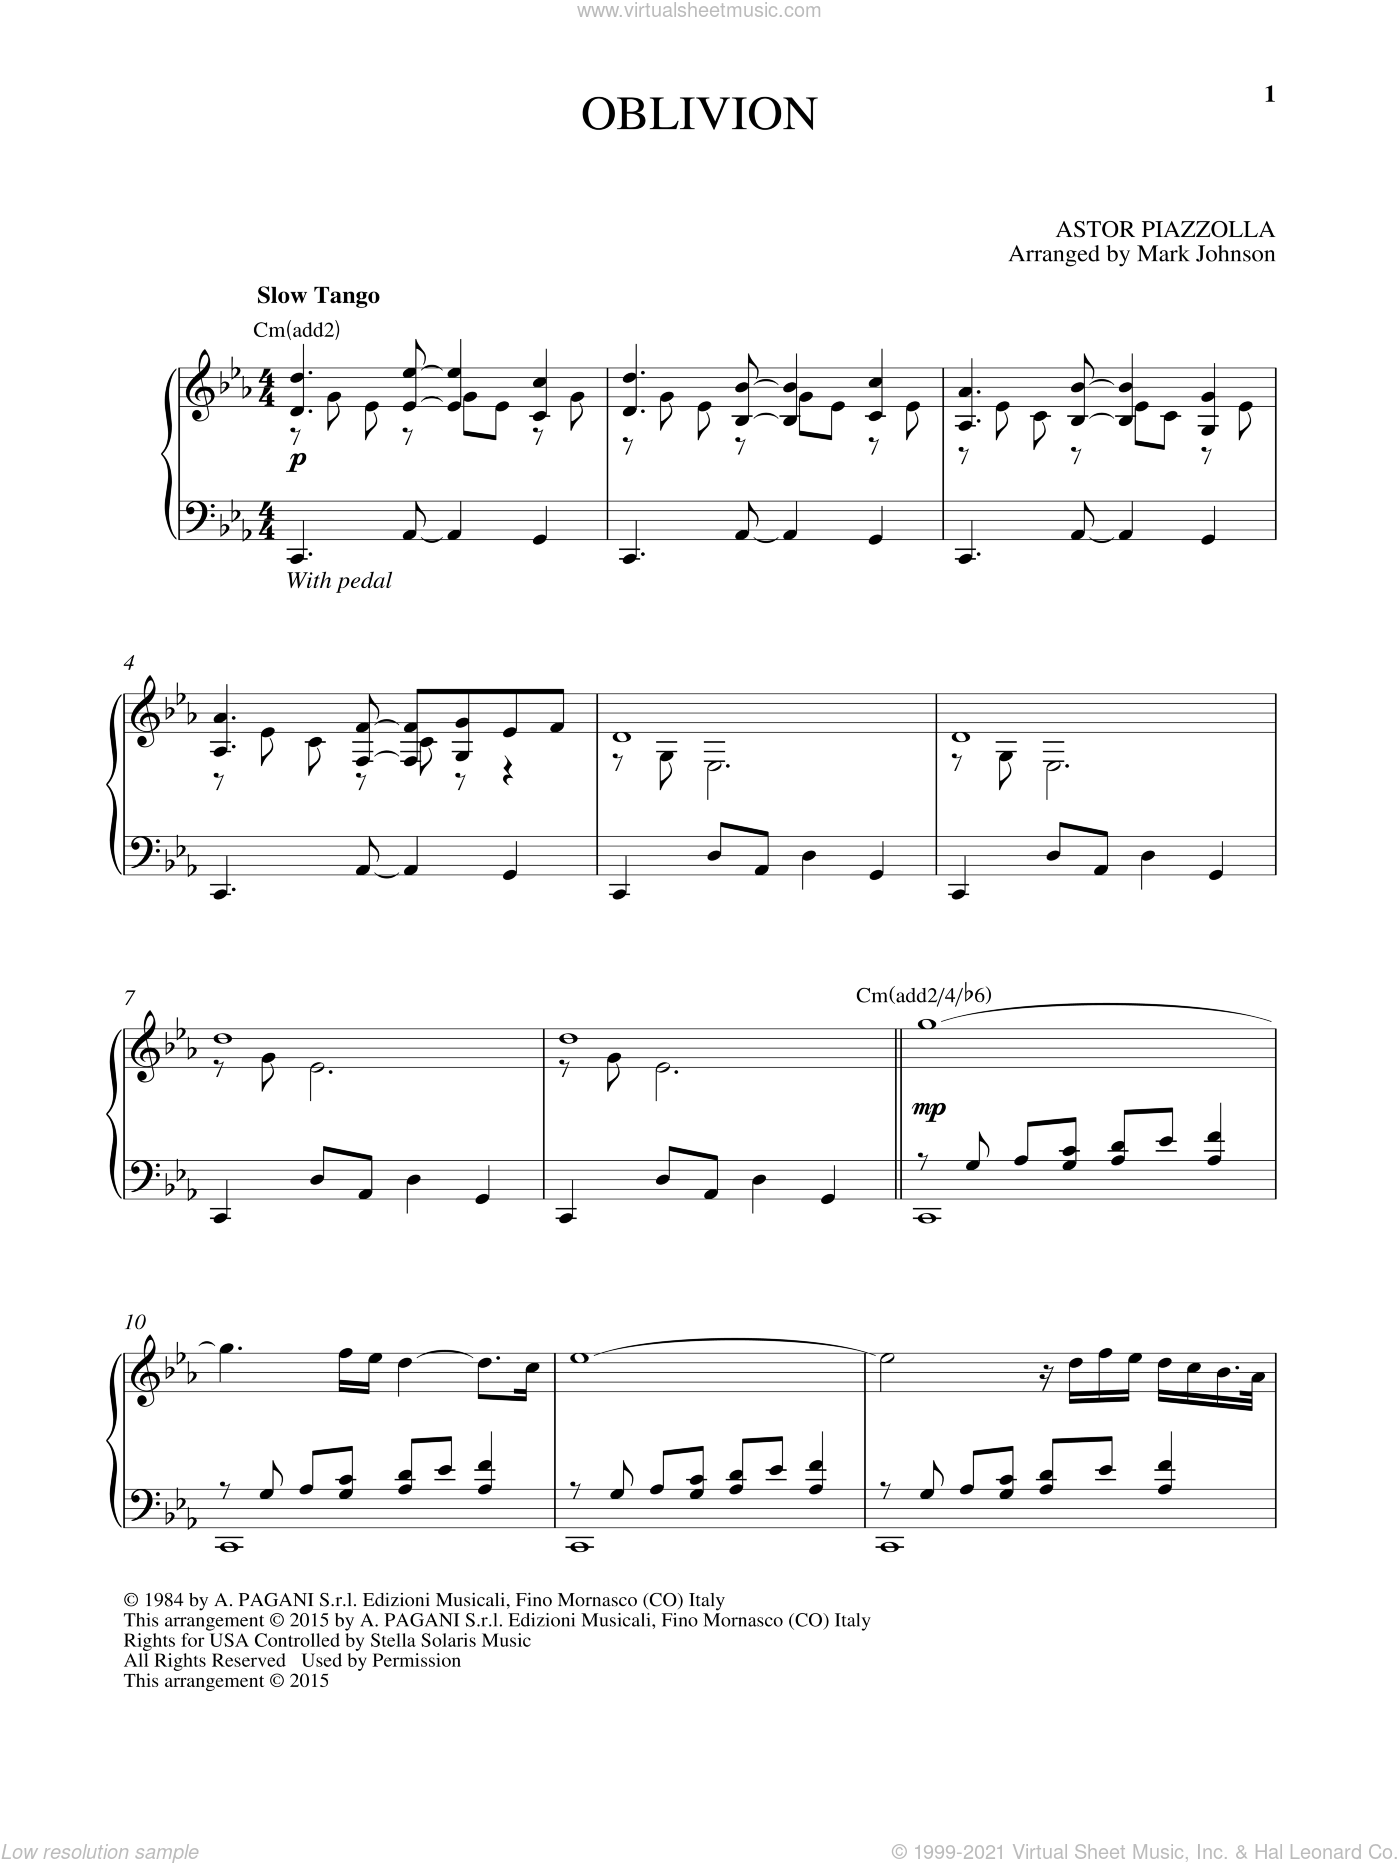 Oblivion sheet music for piano solo by Astor Piazzolla, classical score, intermediate skill level